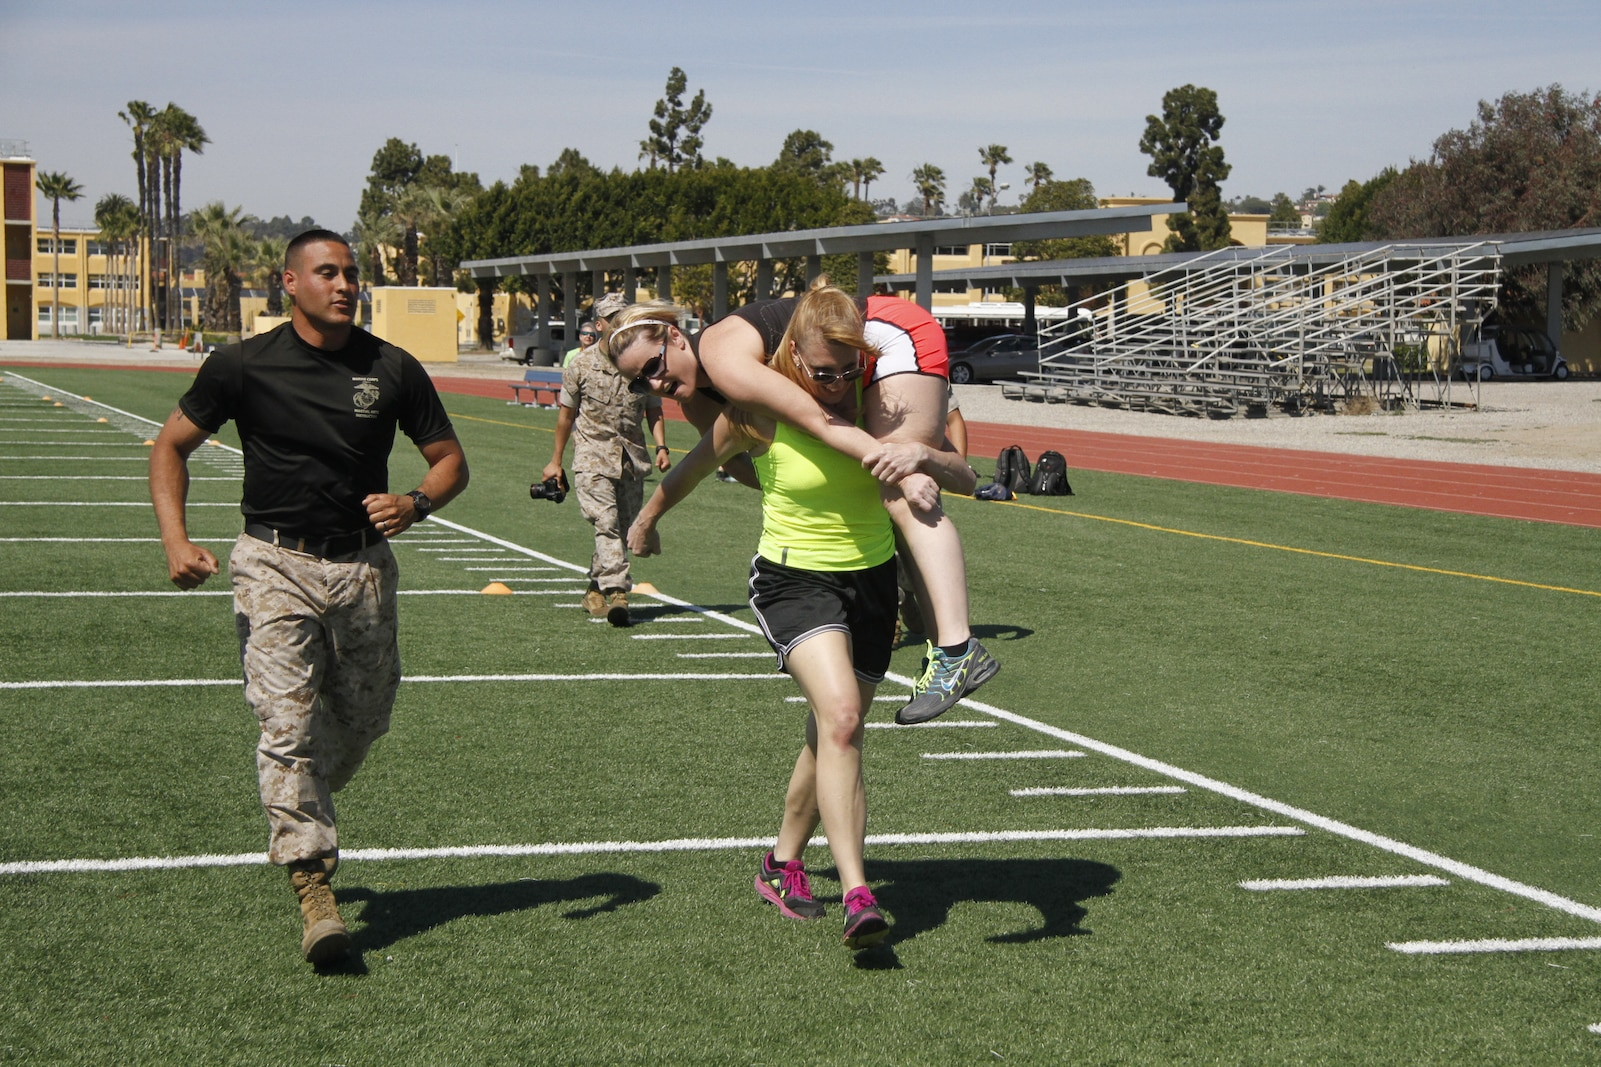 Liane R. Hager, a Harrisonville High School family and consumer sciences teacher, carries Jenny R. Bruns, a Harrisonville High School art teacher, as part of a mock Combat Fitness Test during the Educators' Workshop at Marine Corps Recruit Depot San Diego April 8, 2014. Educators from both Recruiting Station Kansas City and Lansing took part in the workshop. The workshop included the educators asking questions about the rigors of recruit training, firing the M16A4 assault rifle, amongst many other aspects of recruit training.